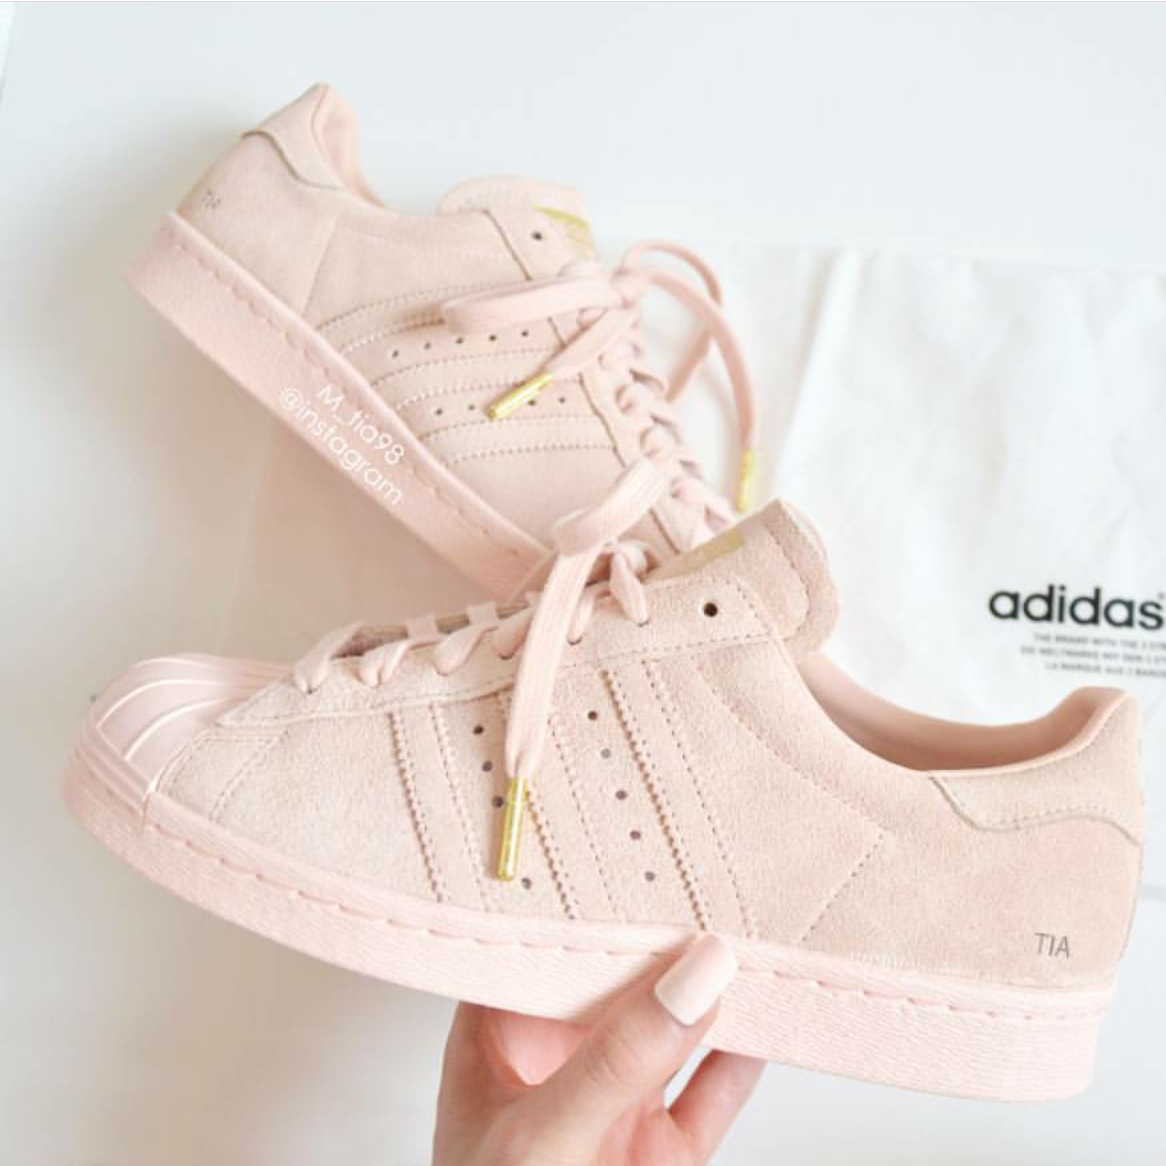 Adidas Superstar Supercolor Kaufen guenti.ch